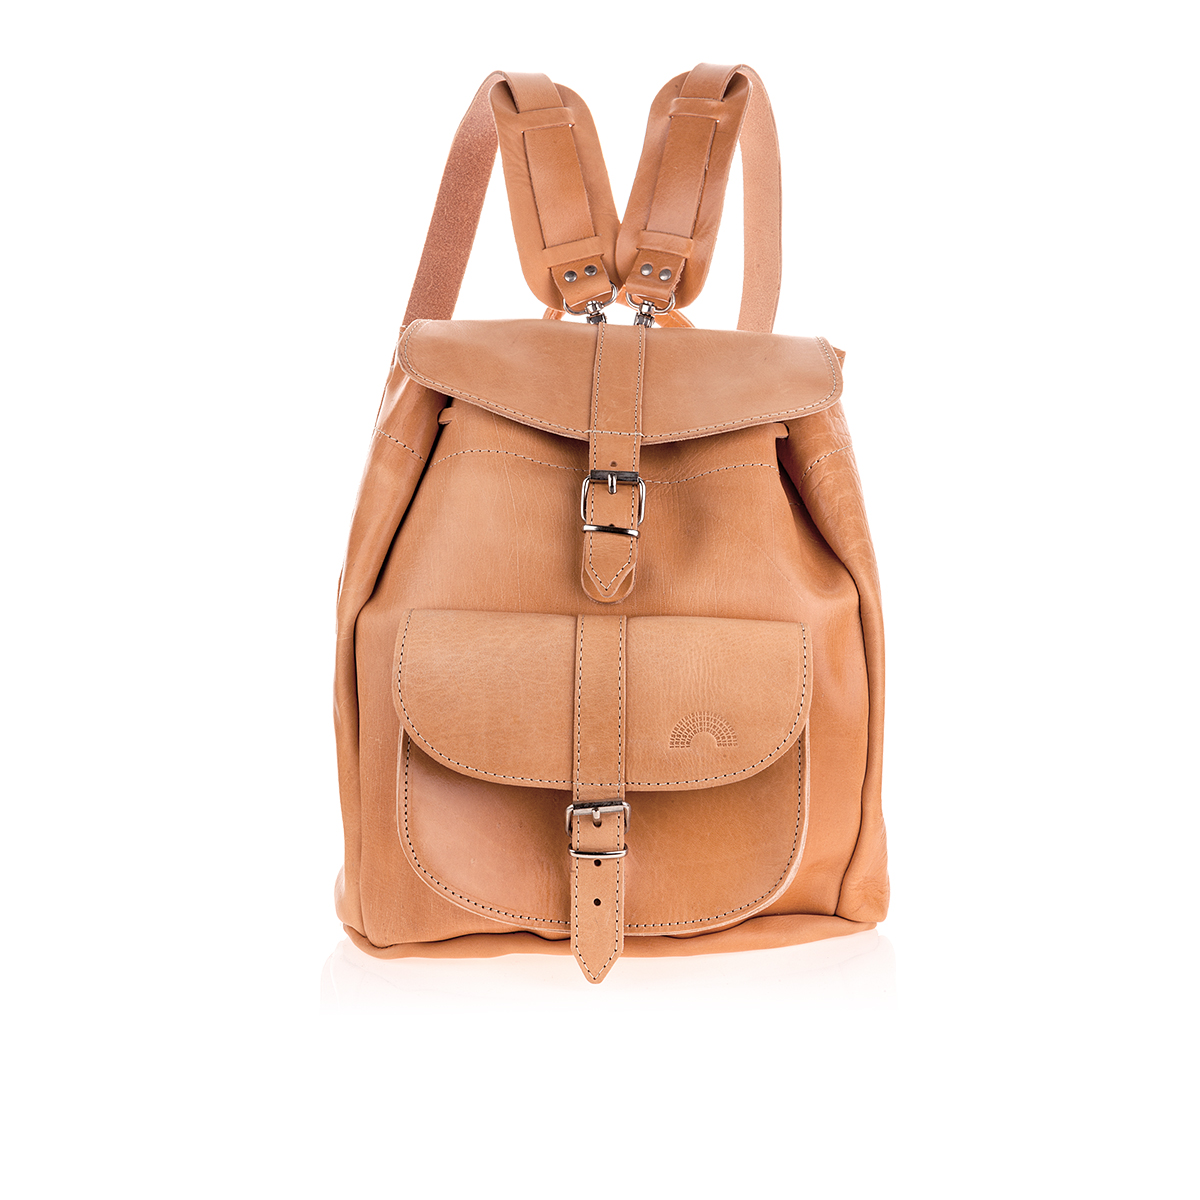 Natural Tan Leather Backpack in Large - Irisandals